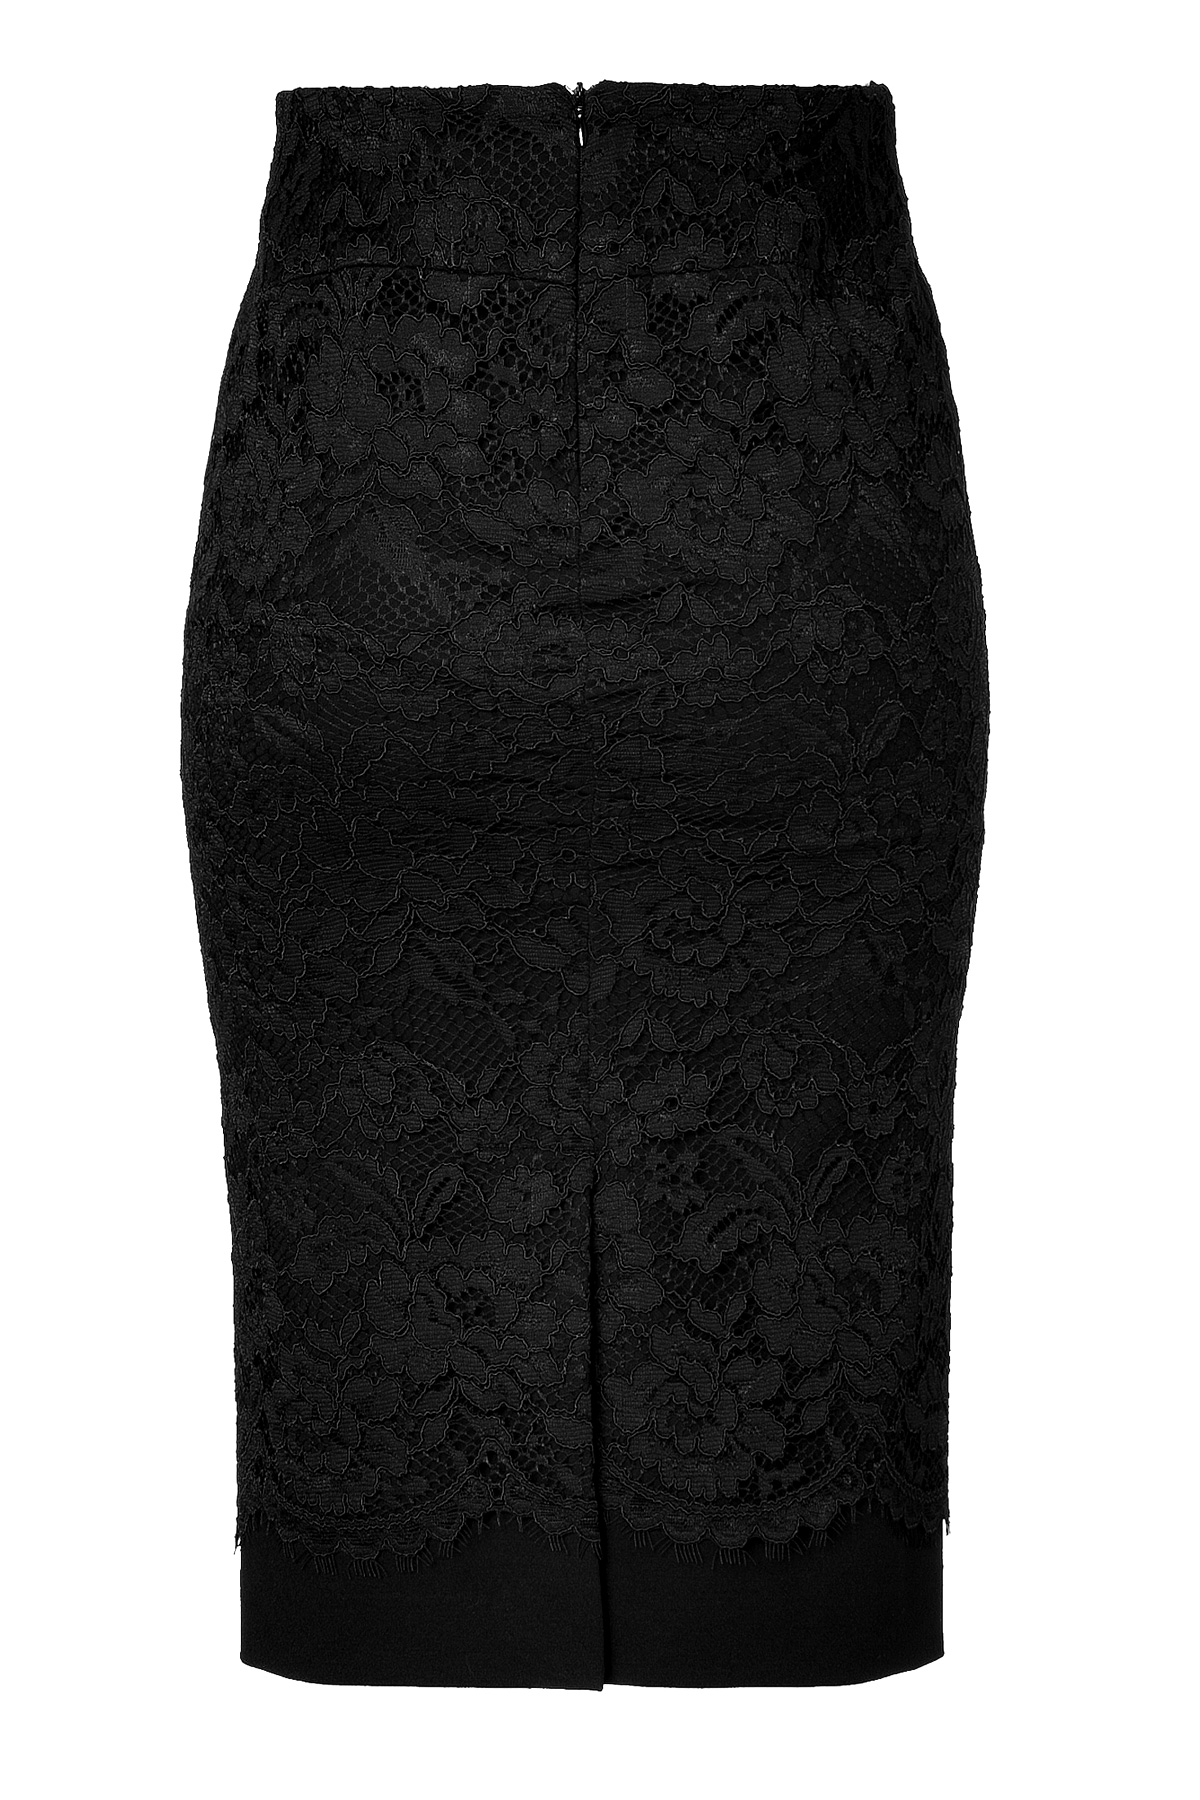 ermanno scervino pencil skirt with lace overlay in black